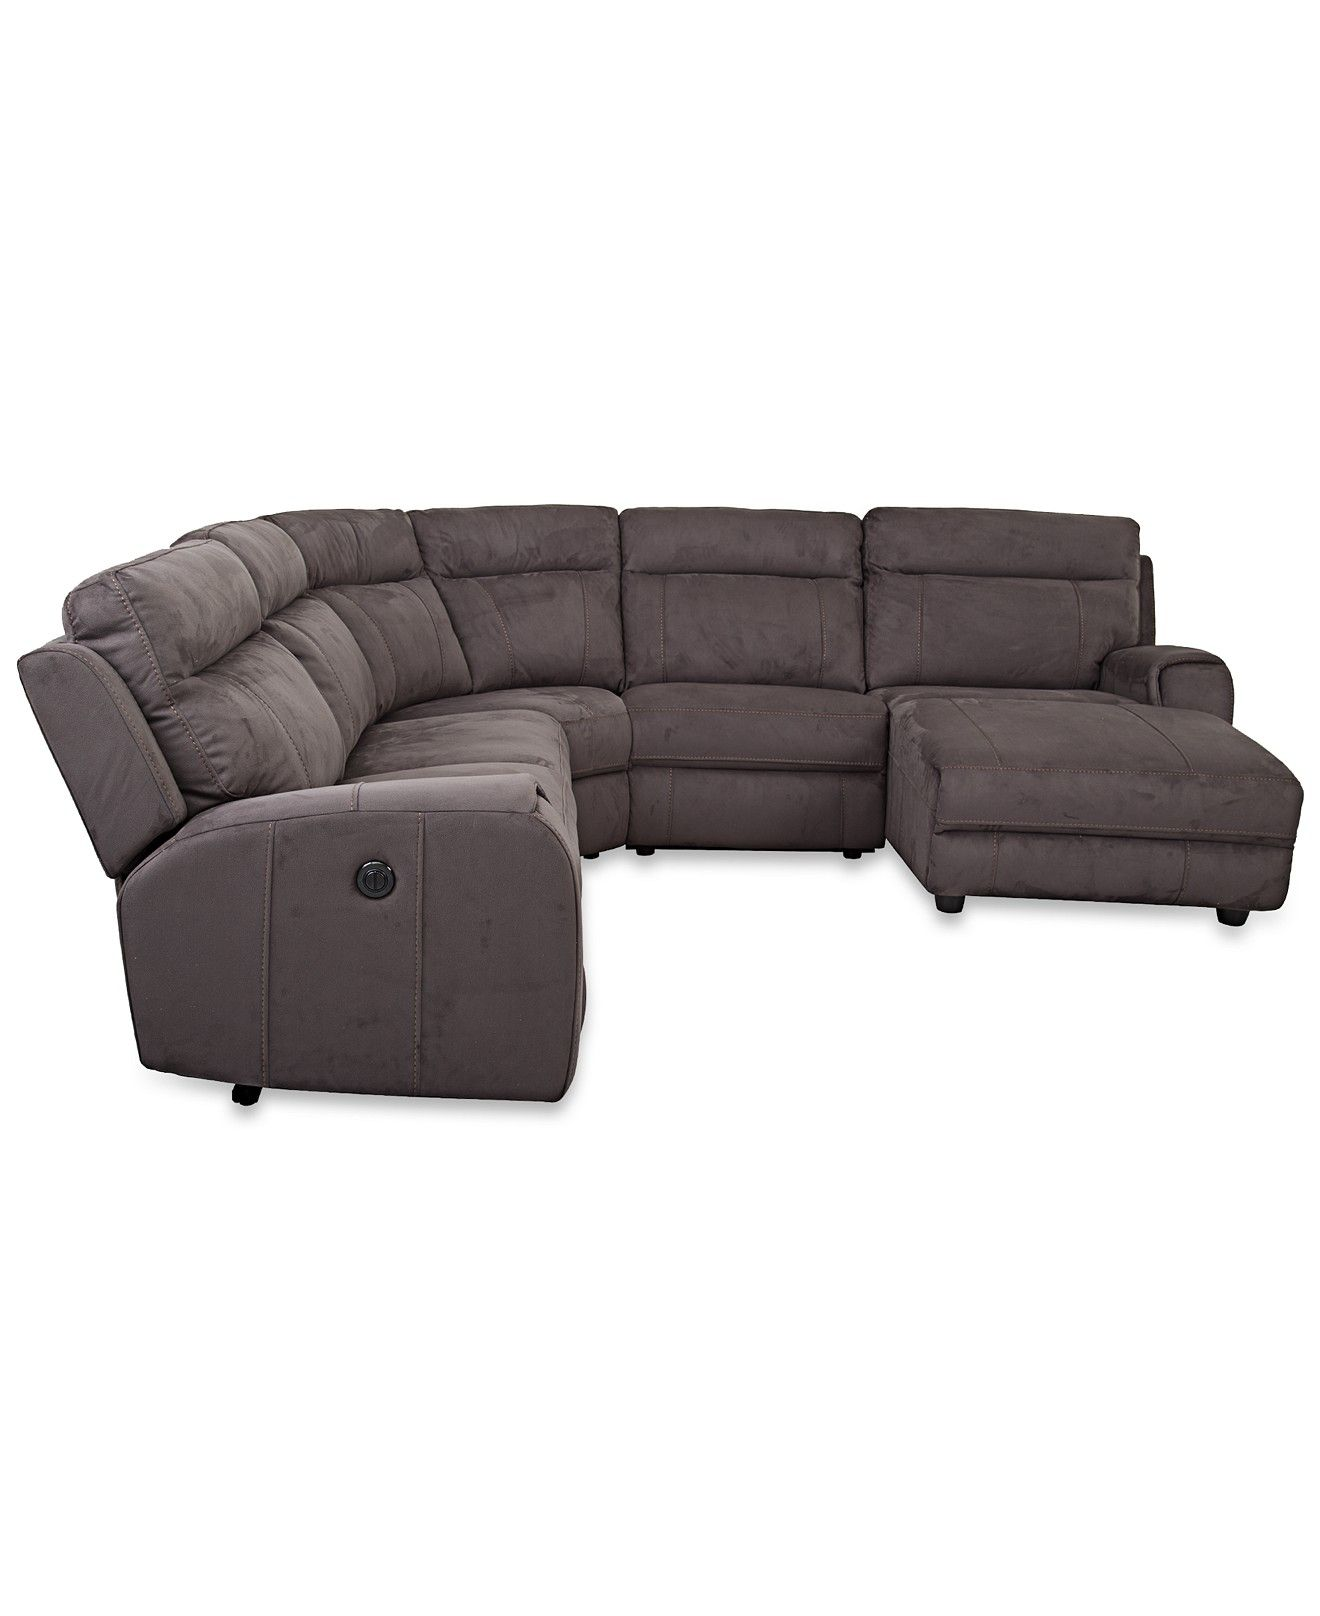 Caruso Leather 5 Piece Power Motion Sectional Sofa Beds Portland Oregon Torie With 2 Recliners